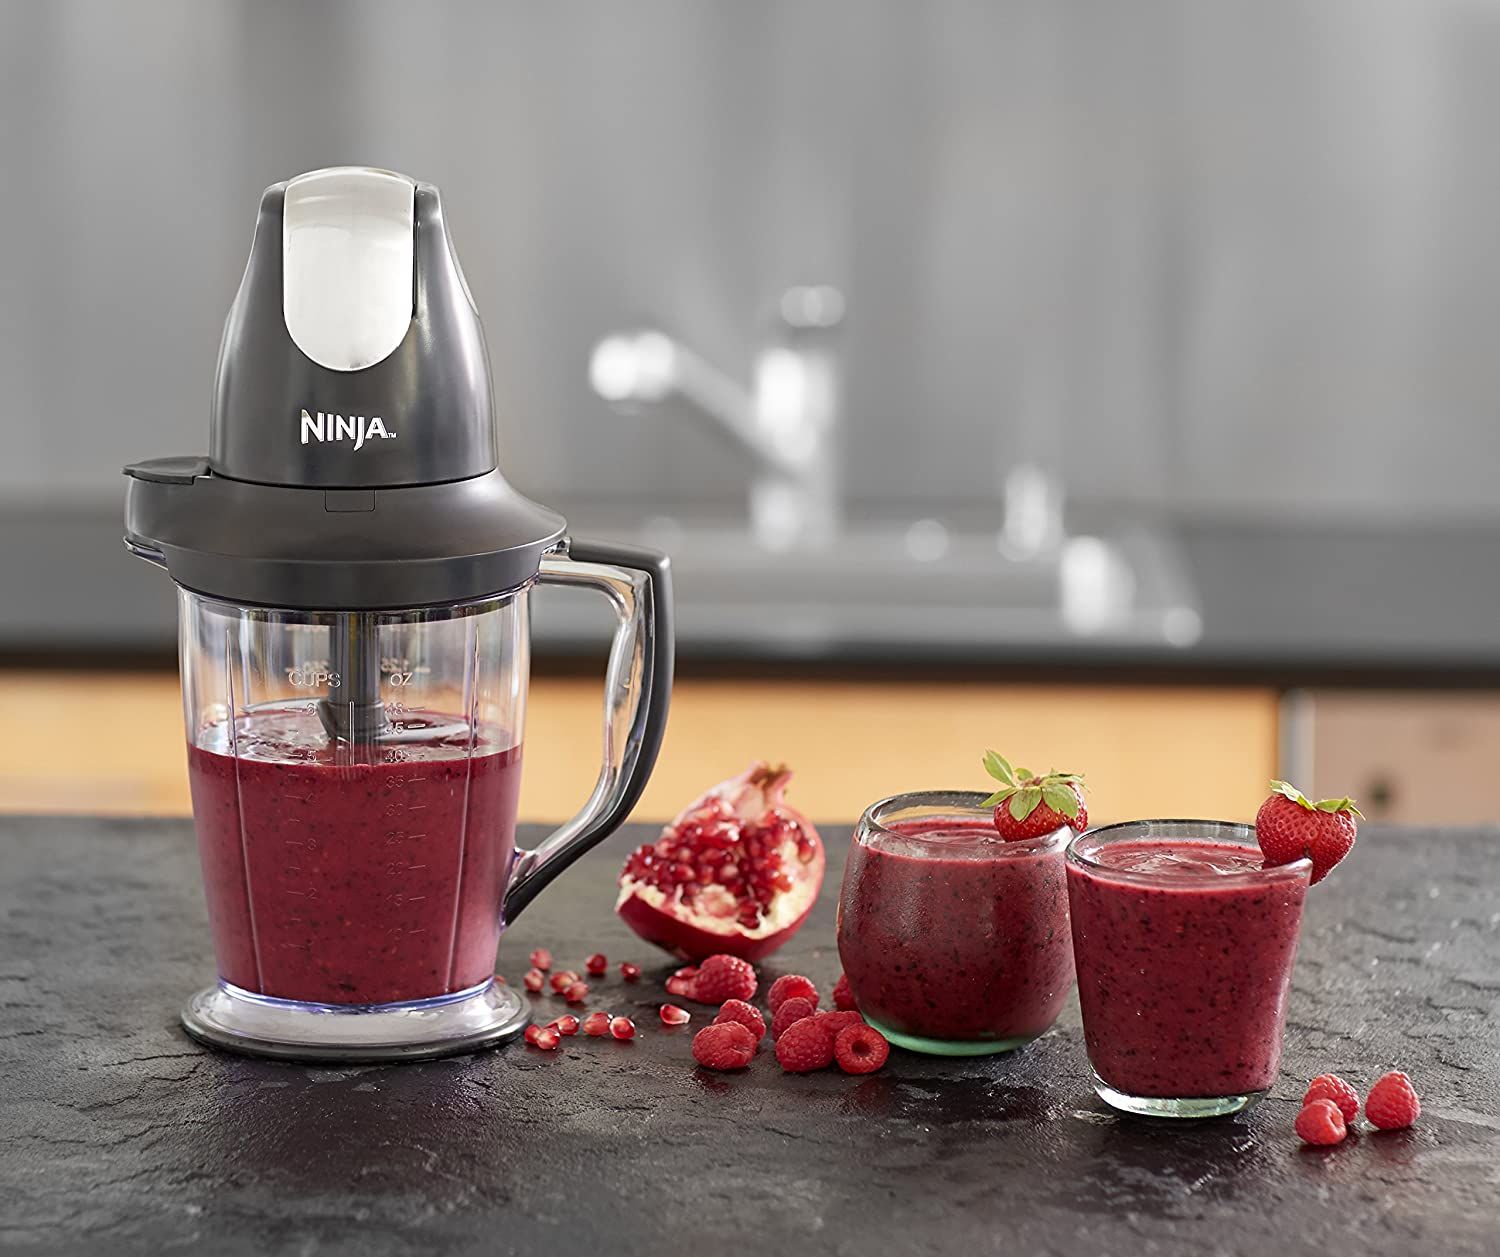 Best Food Processor 2021: The 5 Most Top-Rated And Best Selling Products 3